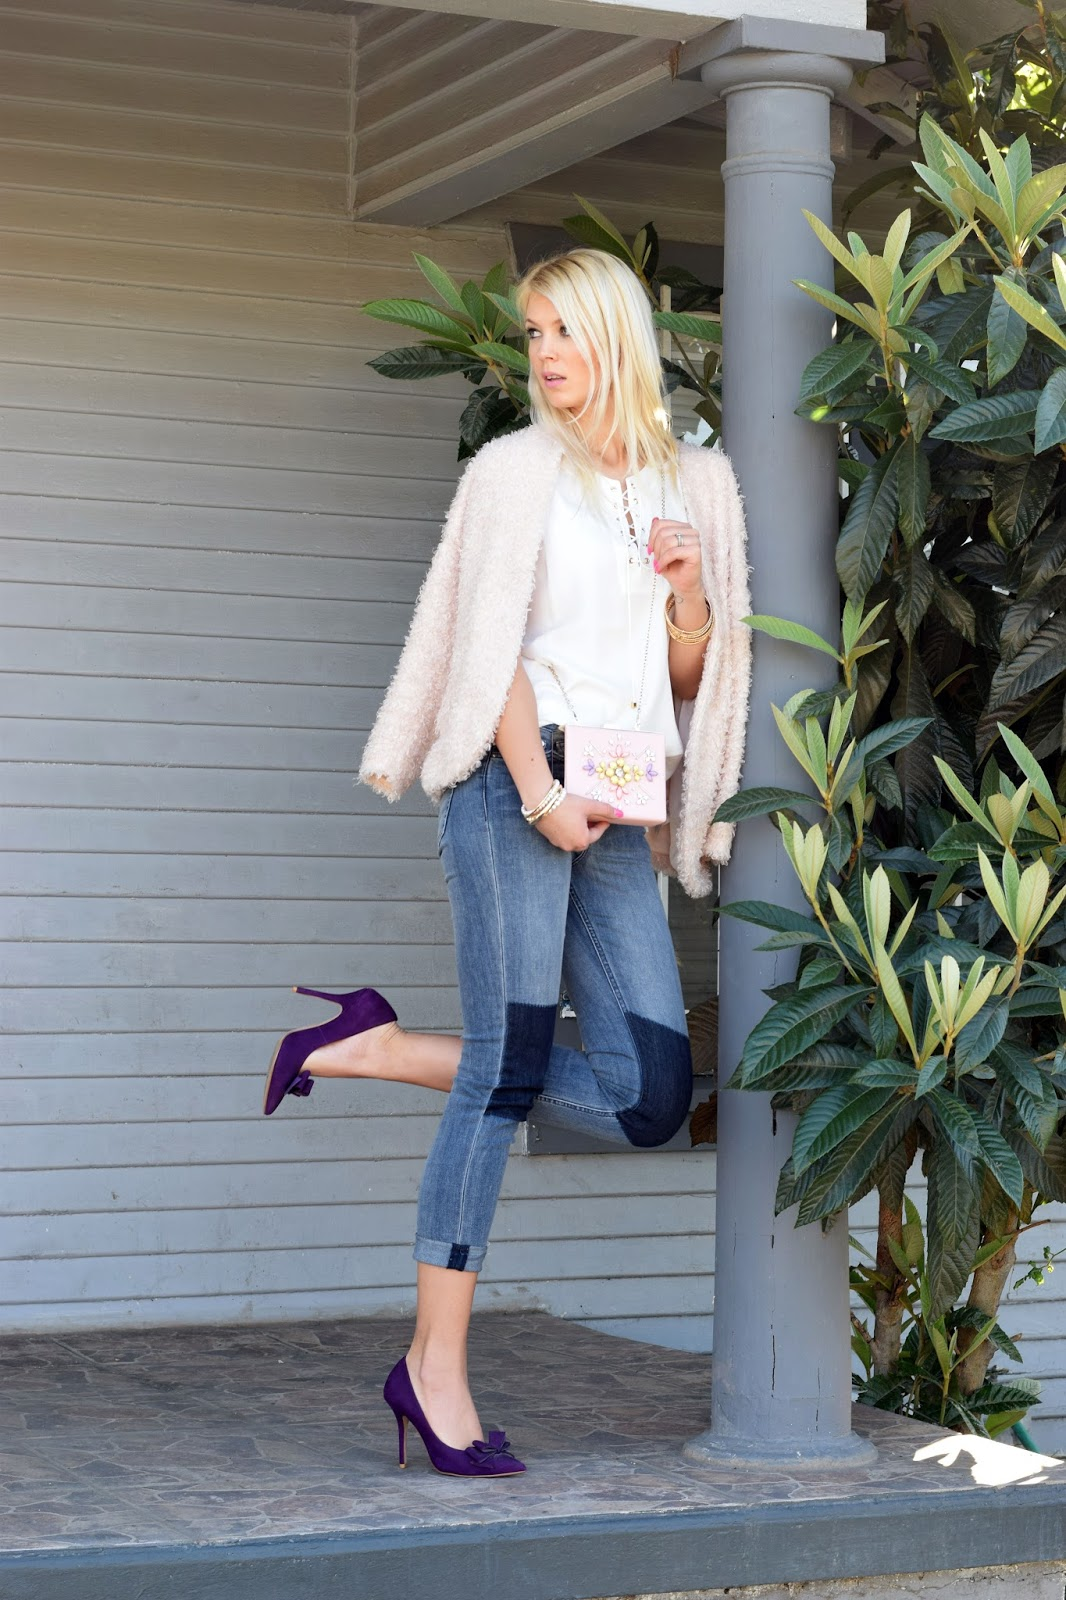 fluffly jacket, heels, rose, nicole lee, nicole lee clutch, pink clutch, purple heels, jeans